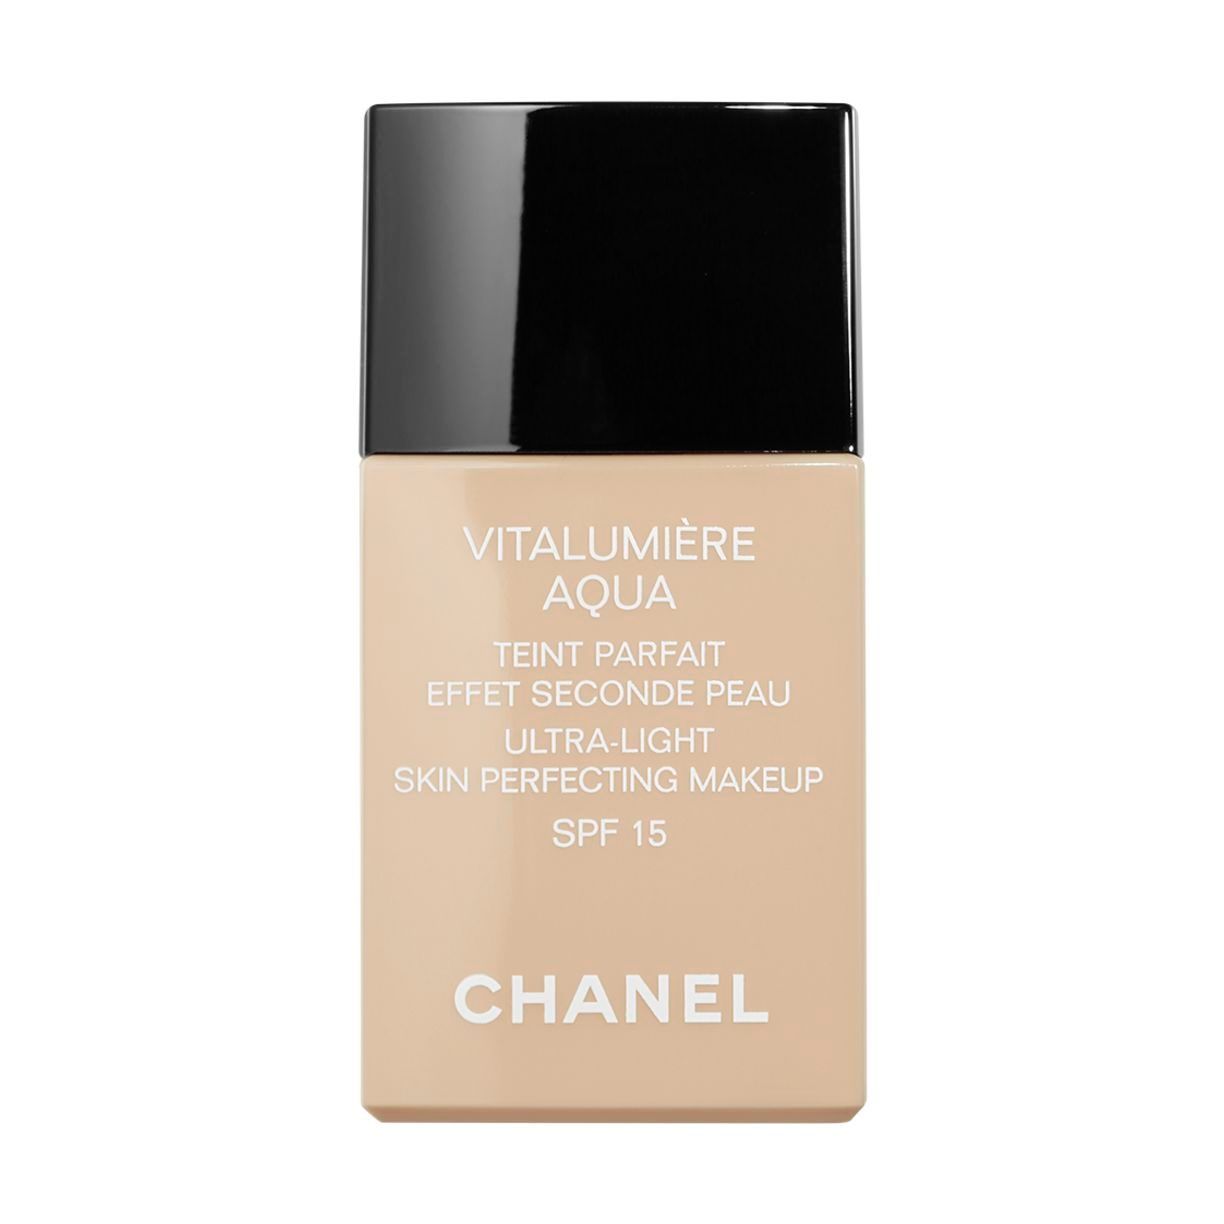 VITALUMIÈRE AQUA ULTRA-LIGHT SKIN PERFECTING MAKEUP SPF 15